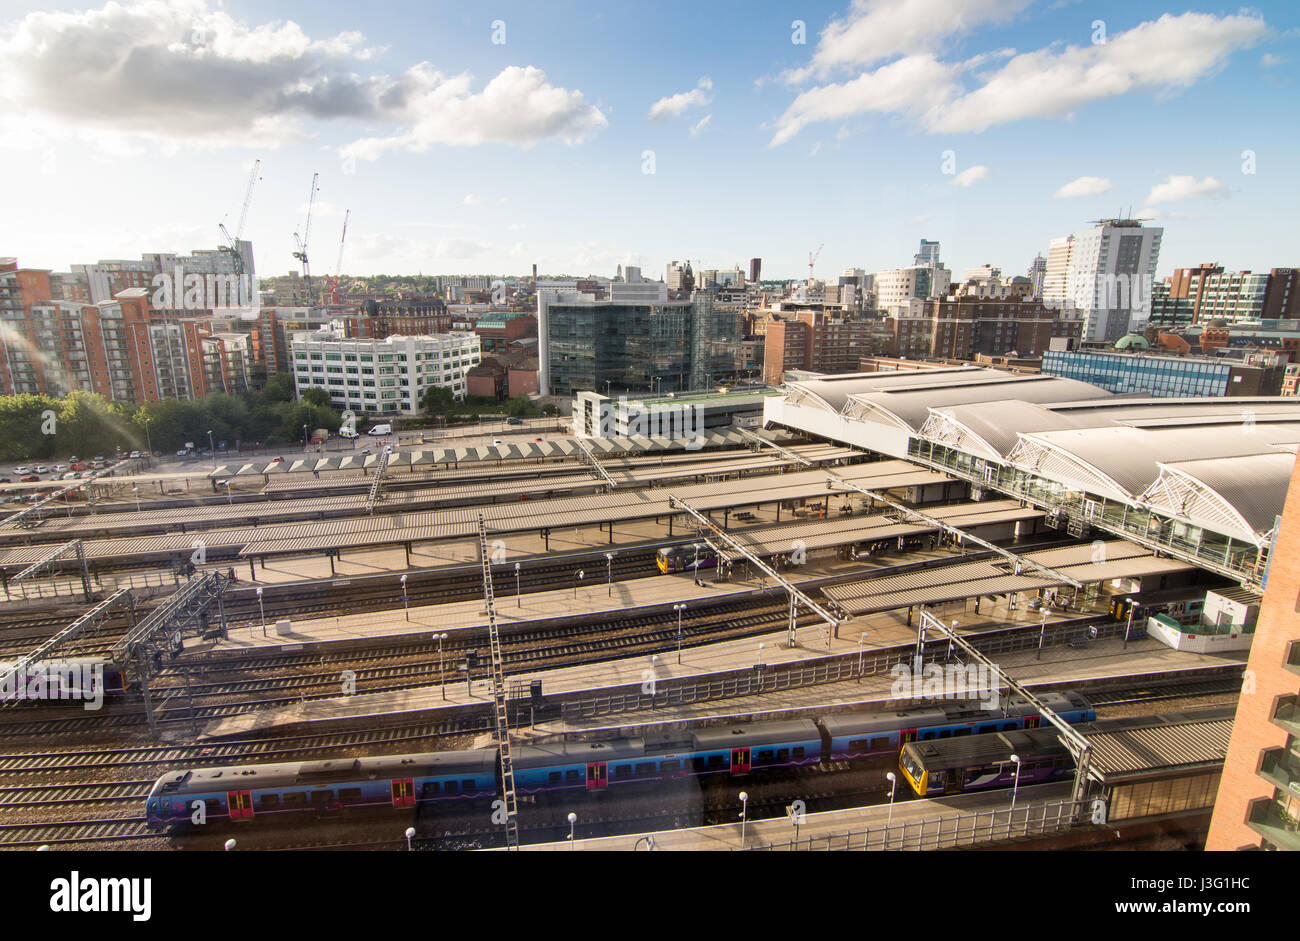 Leeds, England - June 28, 2015: Looking across waiting trains at the platforms of Leeds Railway Station to the skyline - Stock Image